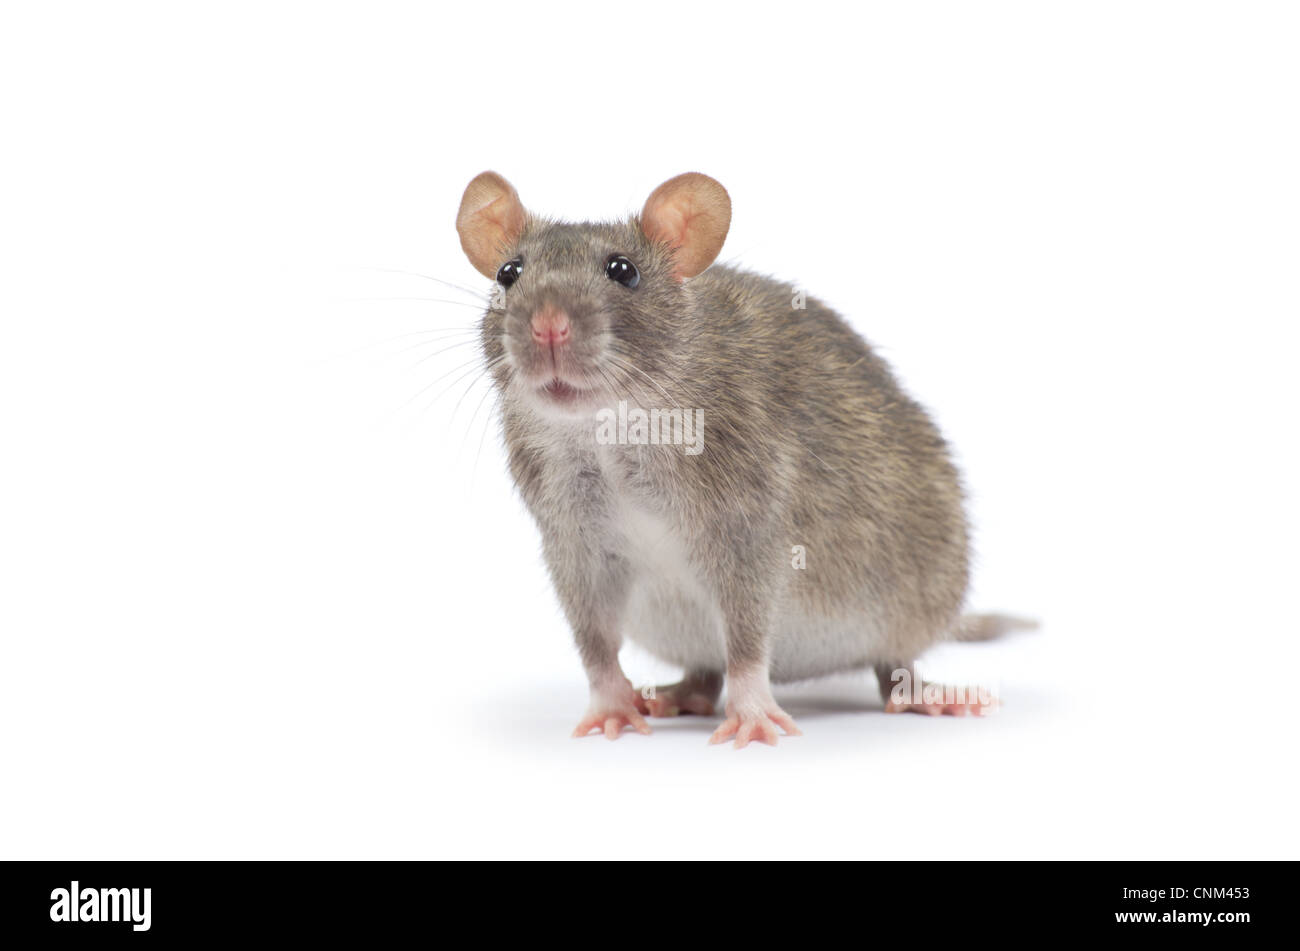 rat isolated on white background - Stock Image